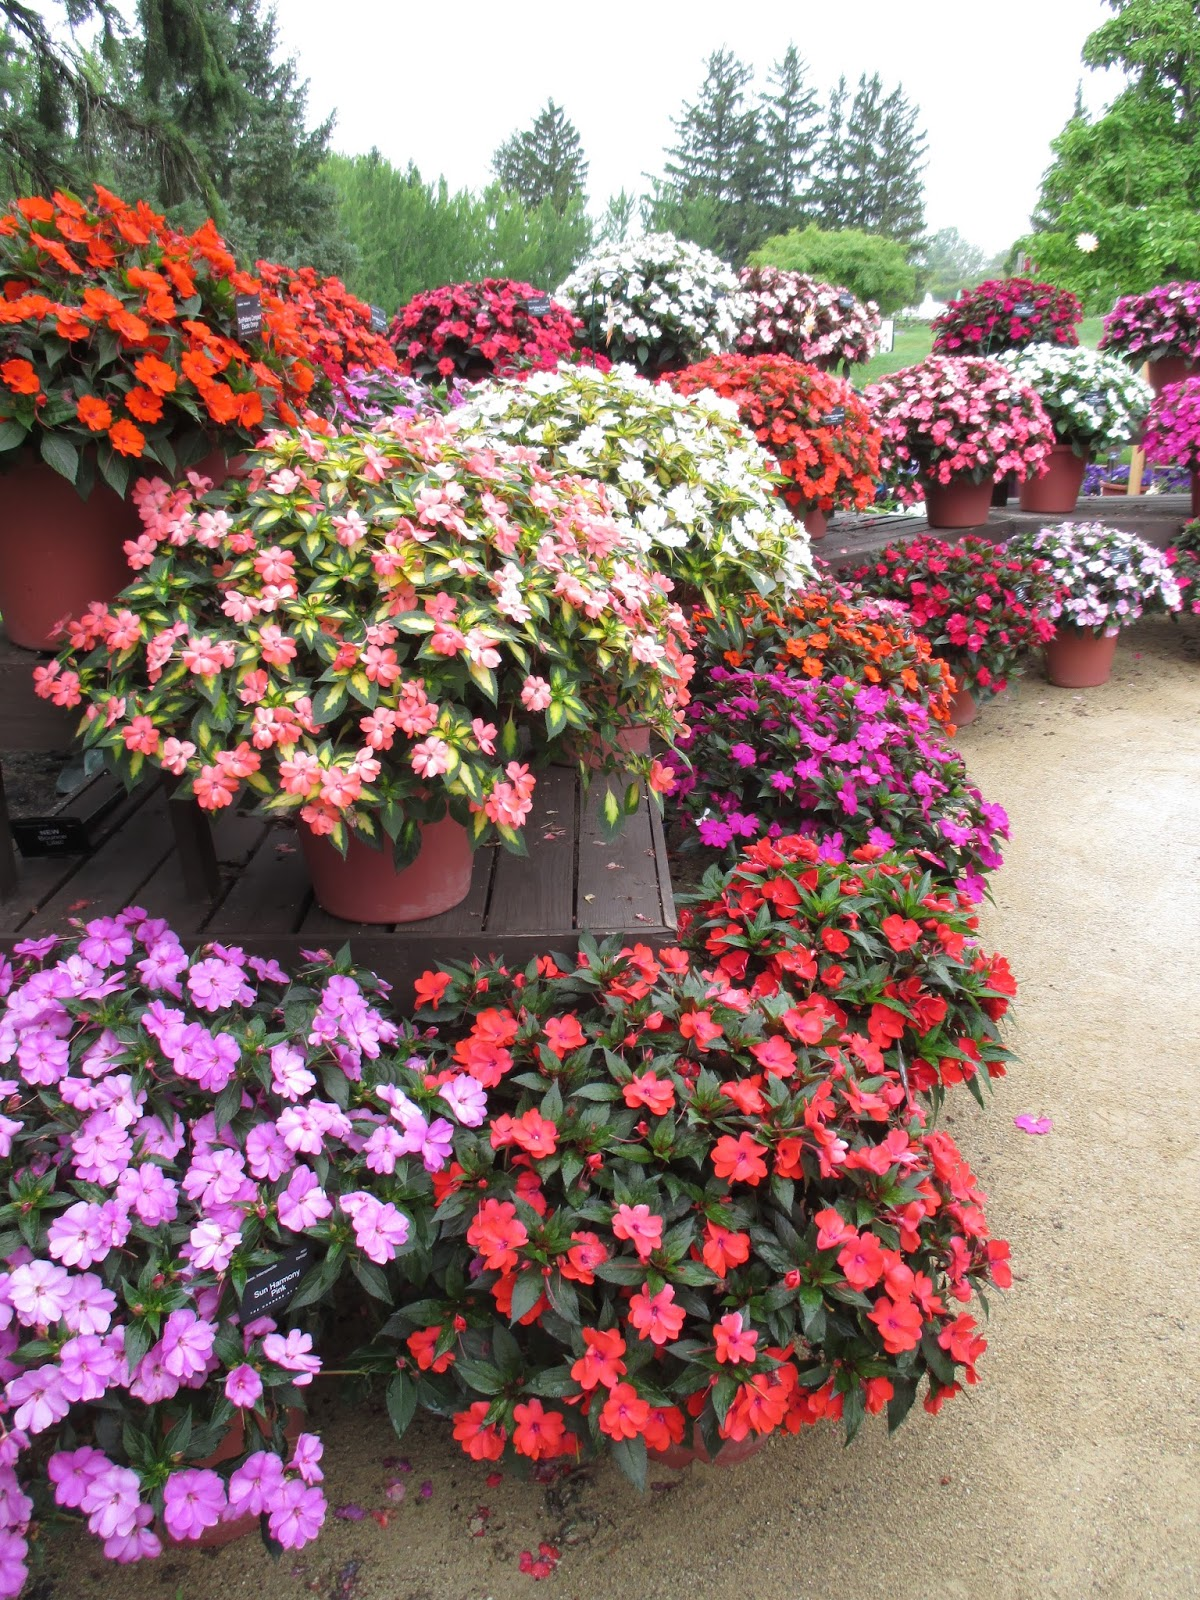 SunPatiens - The Real Deal - Rotary Botanical Gardens